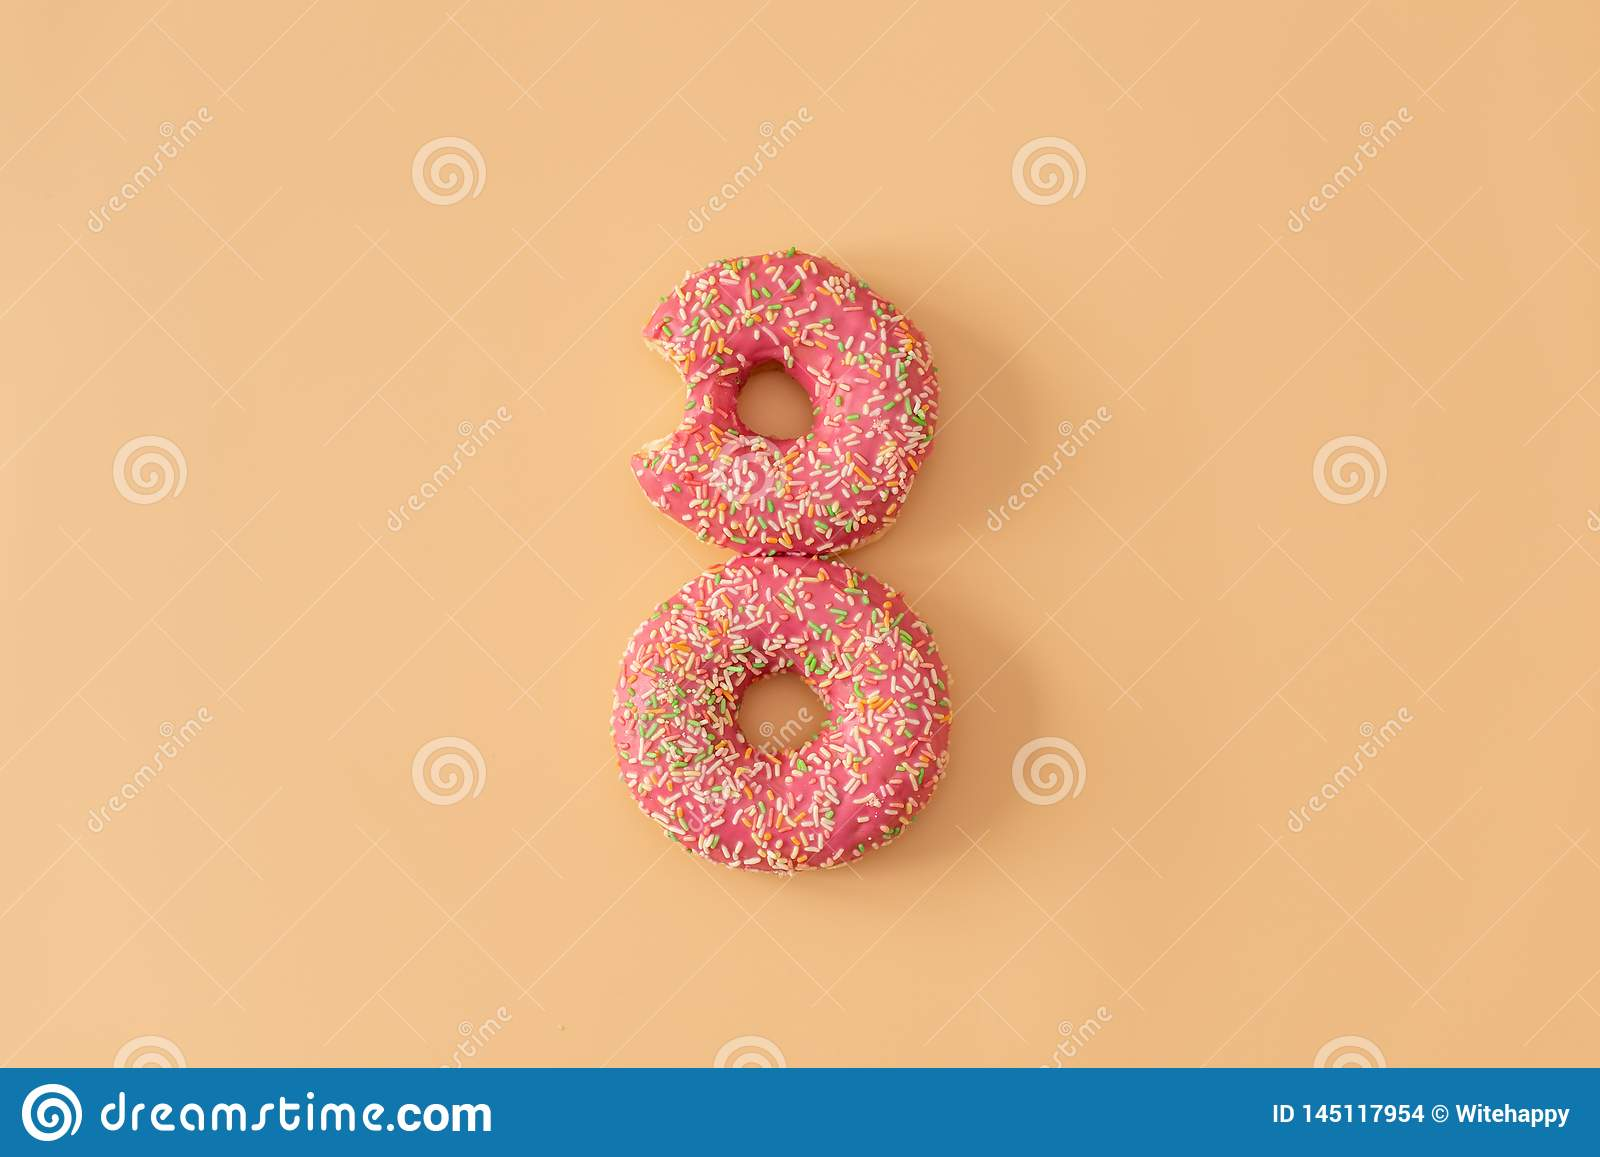 Flat lay donuts pattern on pastel orange background. Top view. Square crop. Sweet doughnut texture, copy space